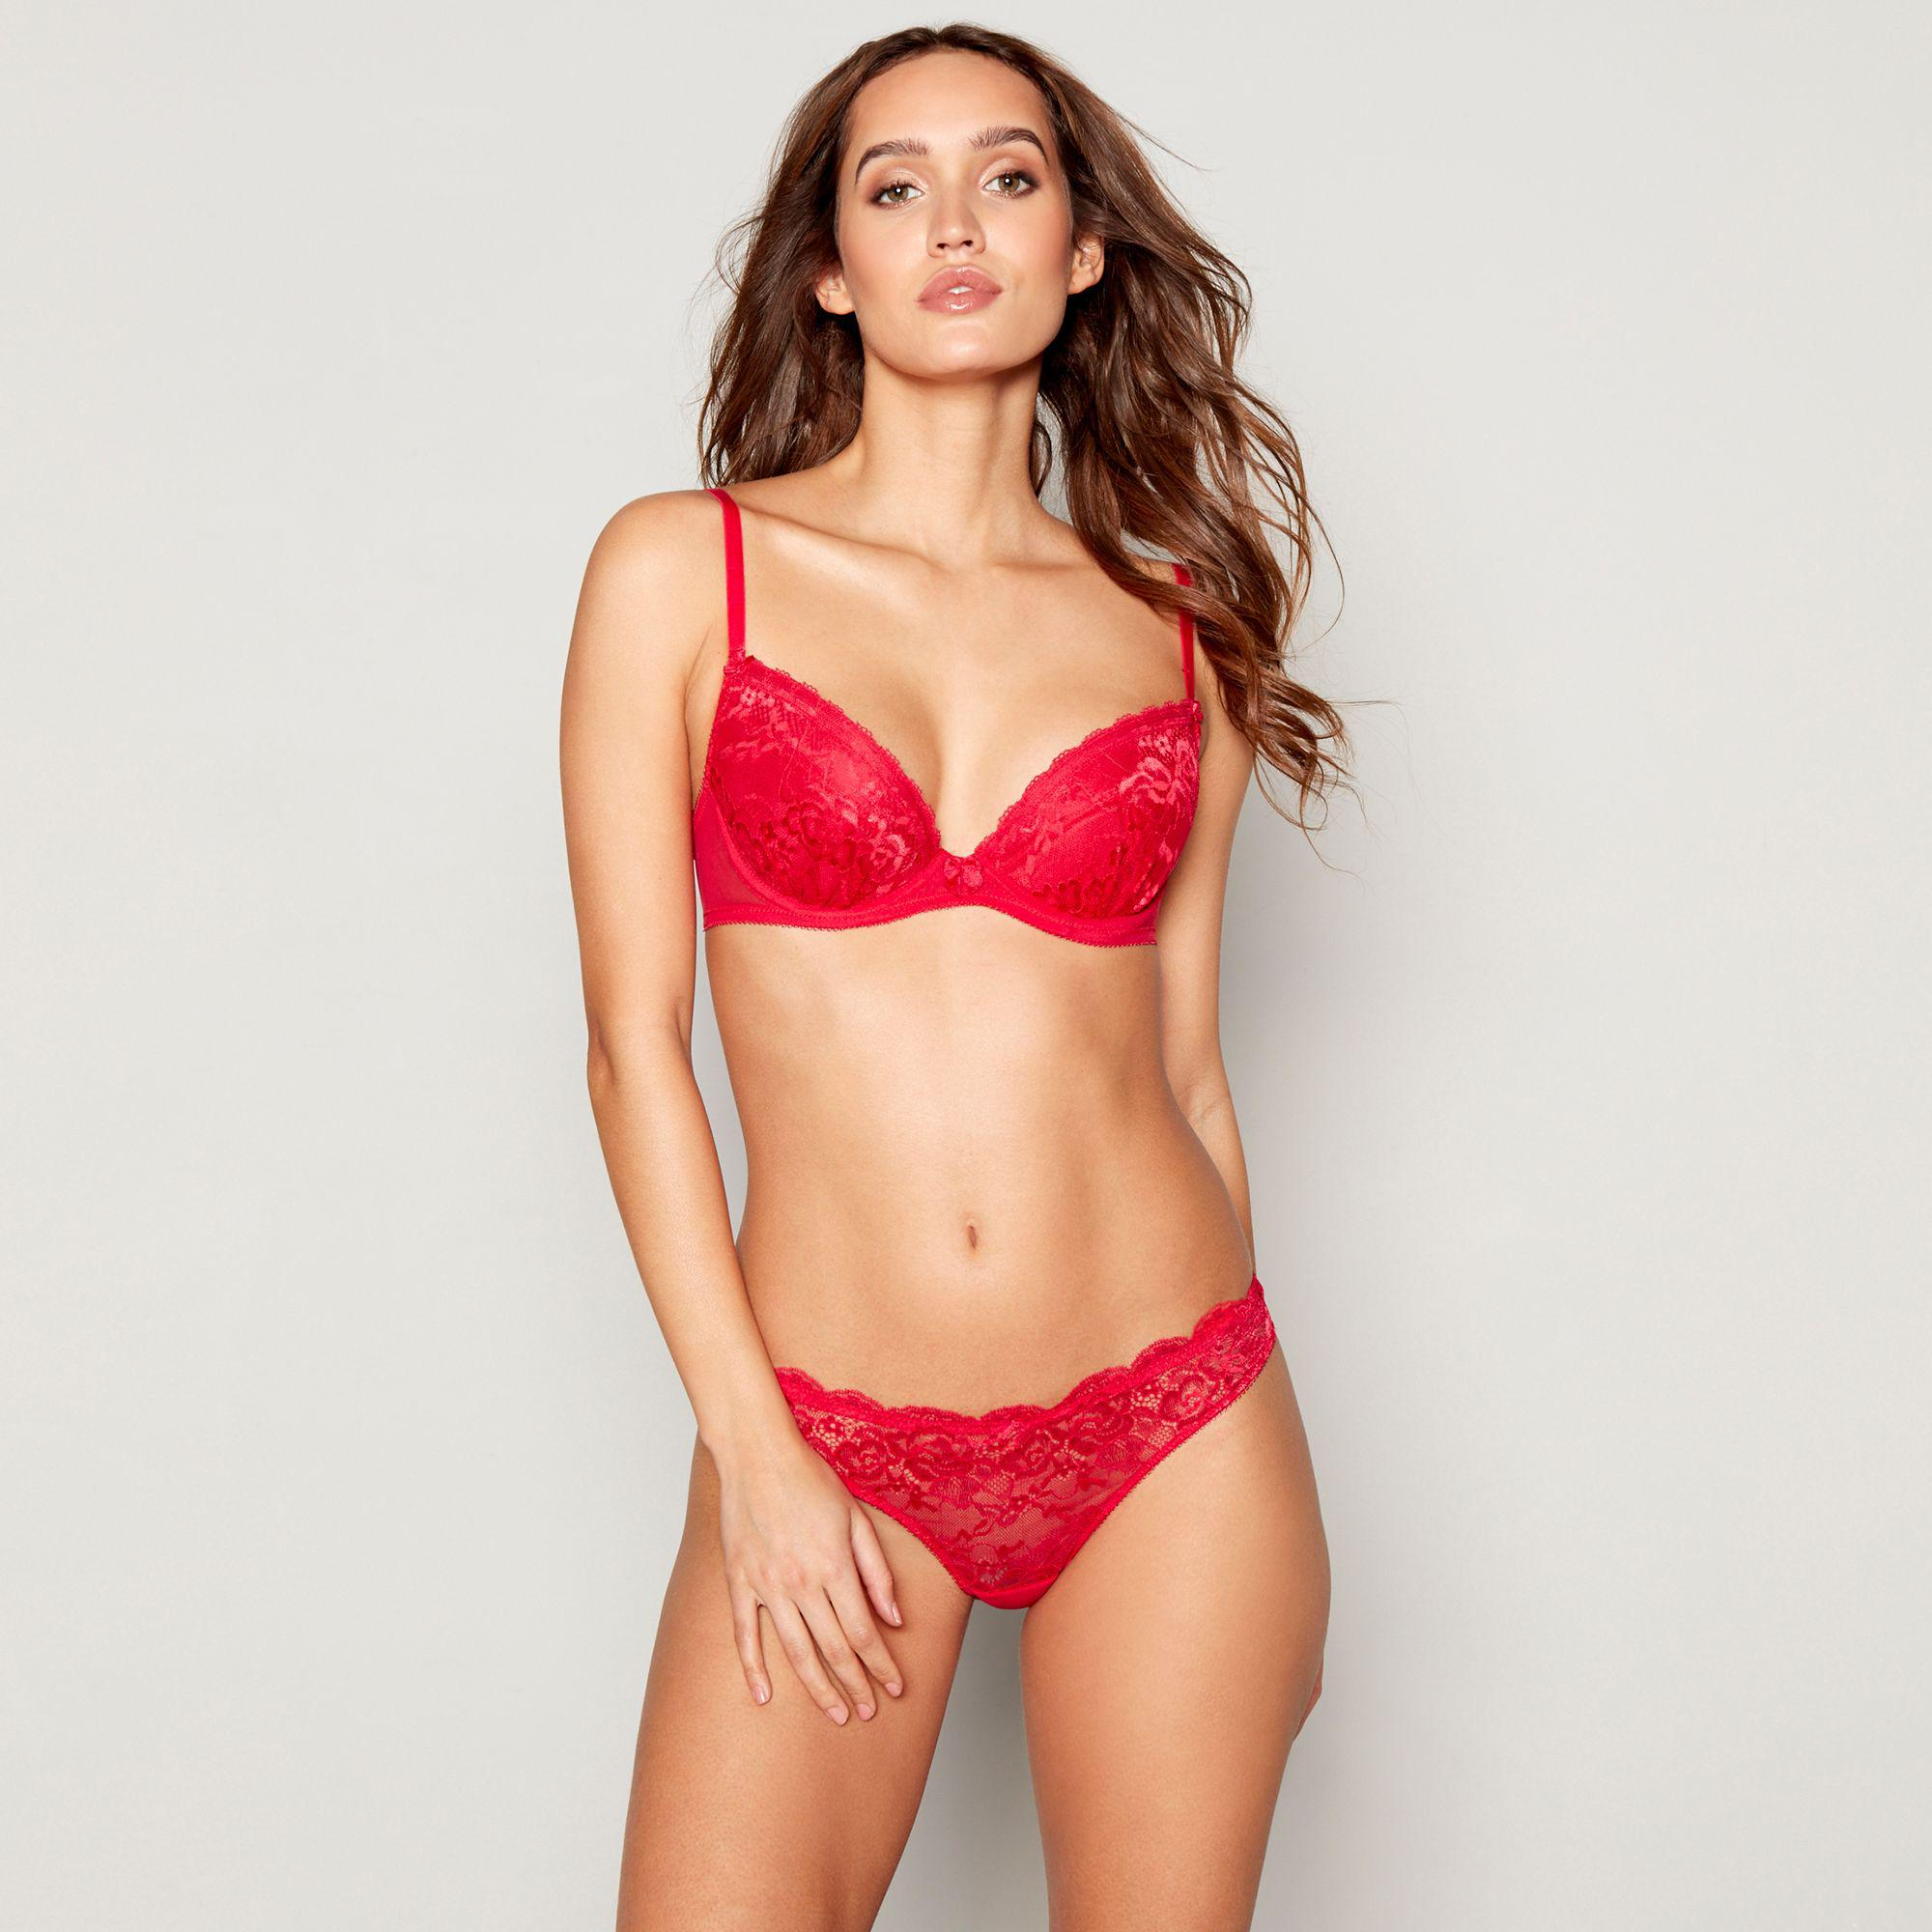 00cf1df1d405 Ann Summers Red Lace Underwired Padded Plunge Bra in Red - Lyst